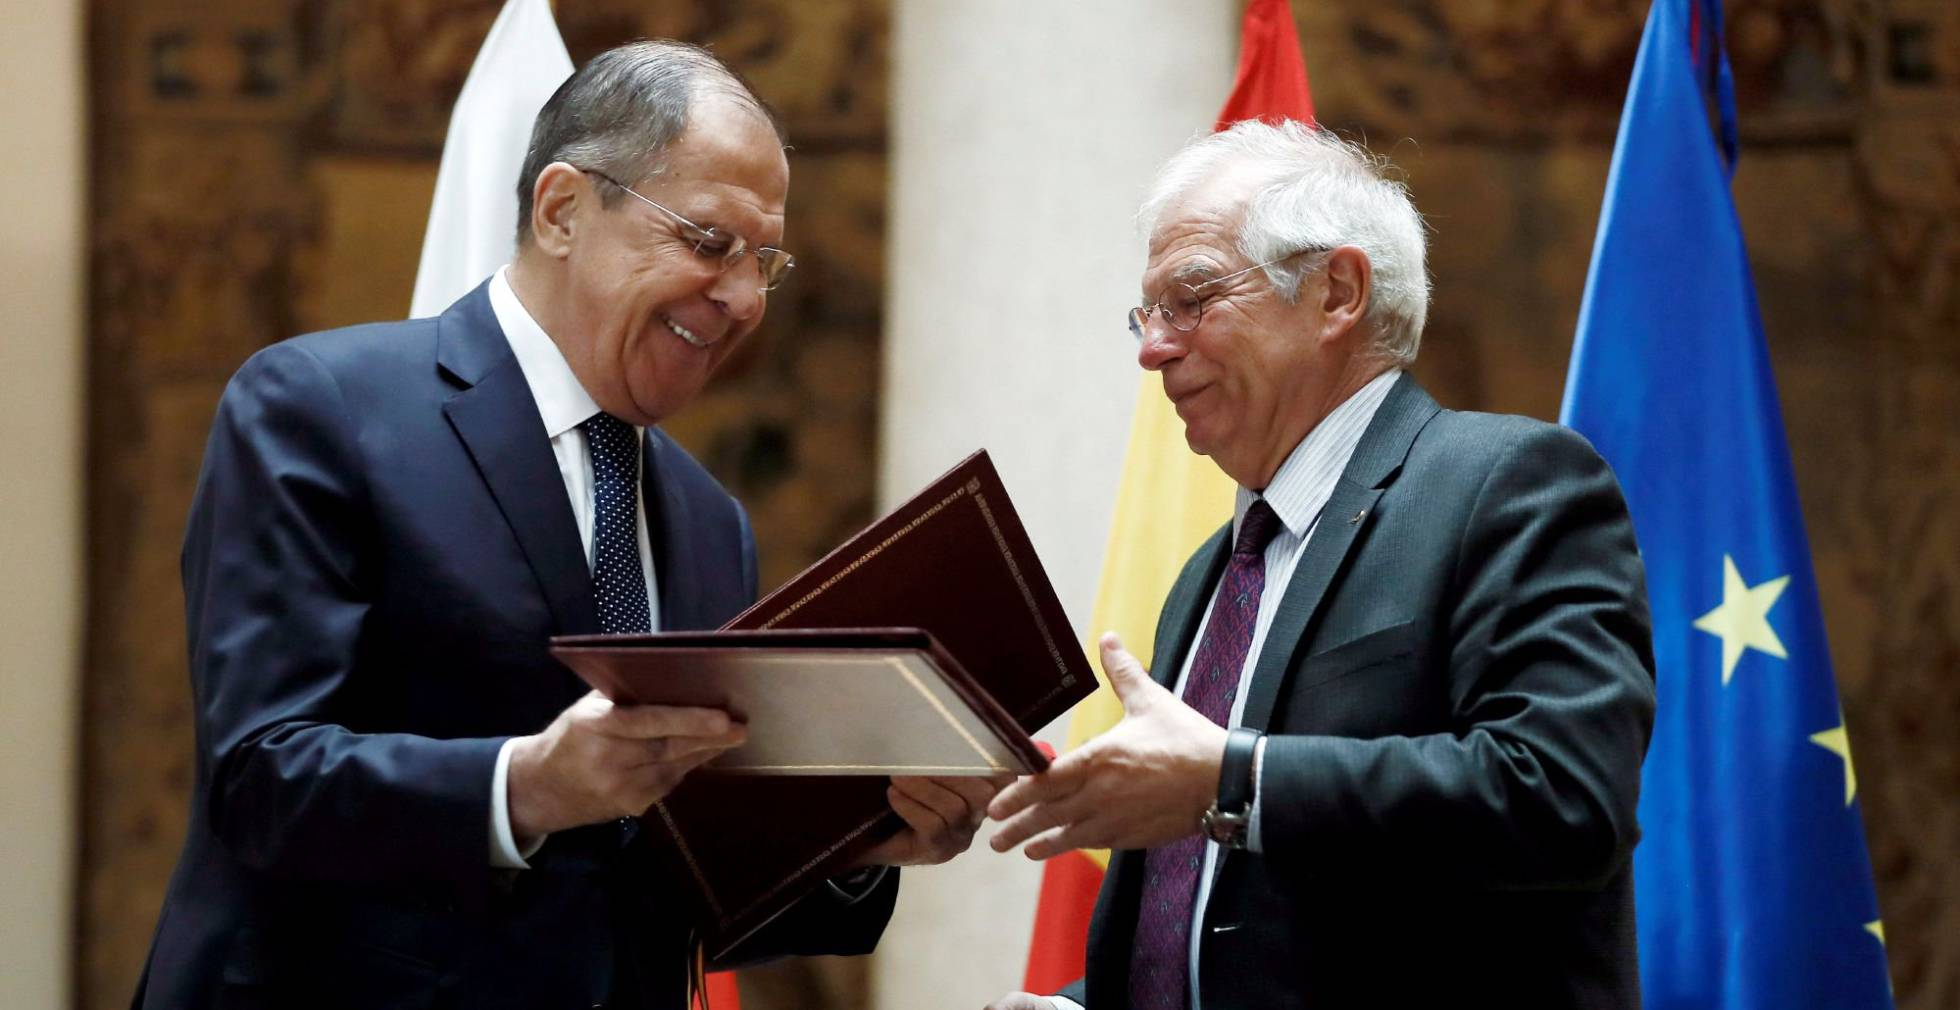 El Pais: Spain will no longer cooperate with Russia in fight against disinformation